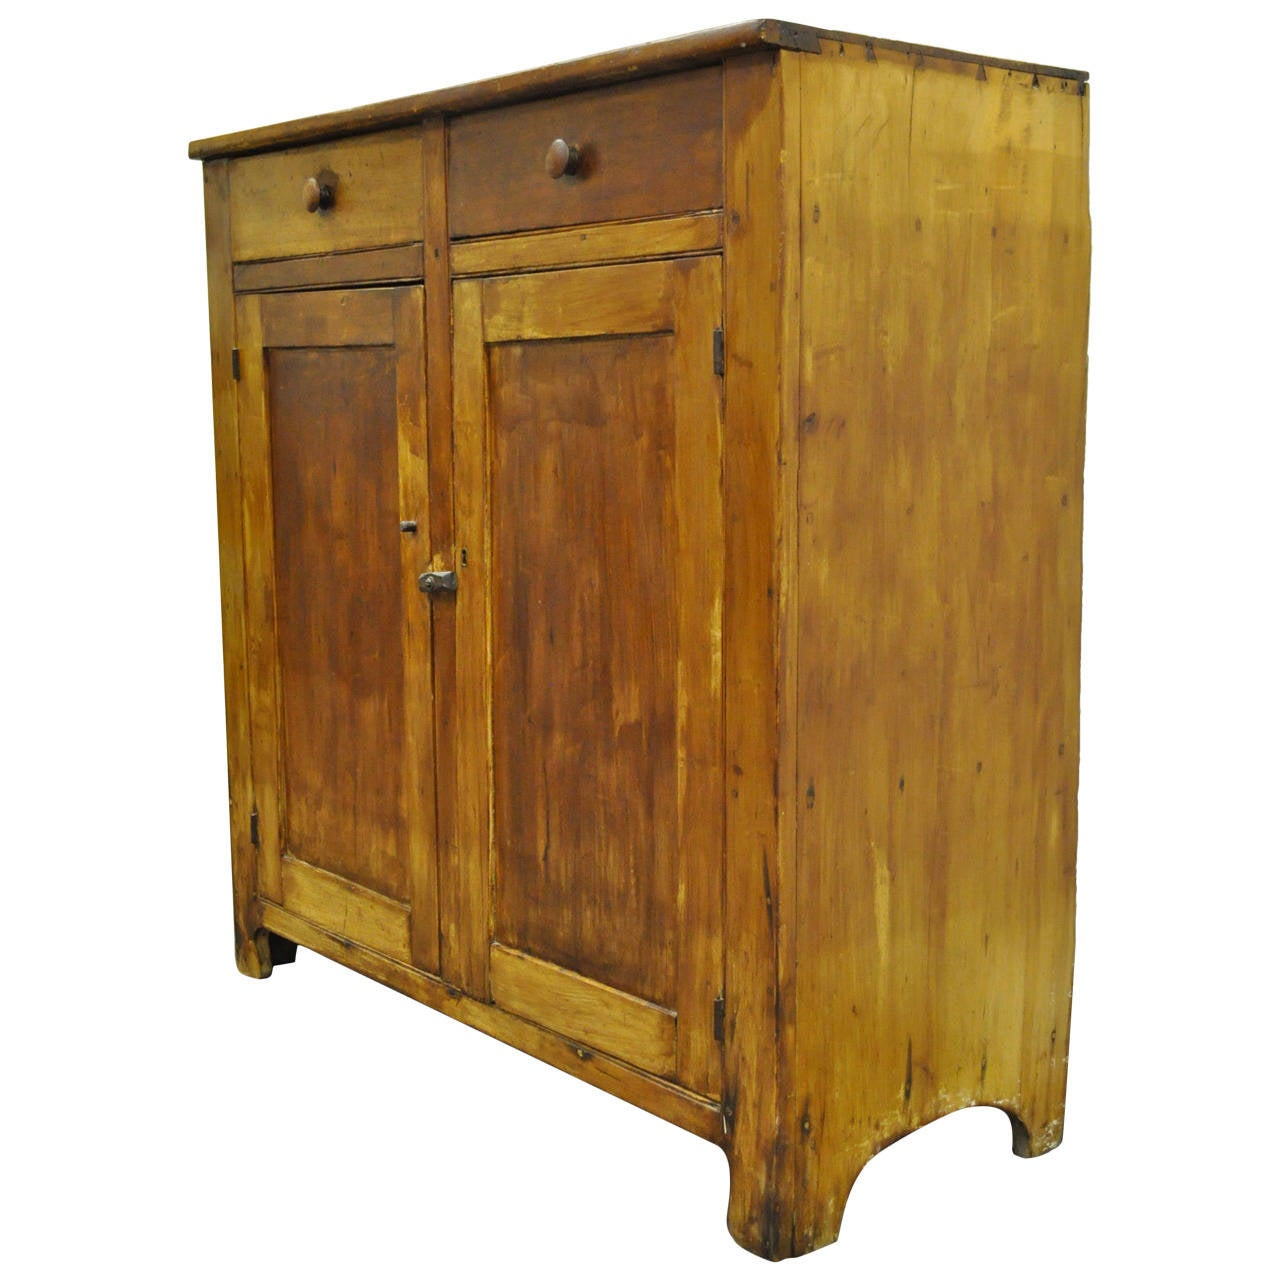 Rustic Pine Kitchen Cabinets: Primitive Rustic Pine Hand Dovetail Joined Jelly Cupboard